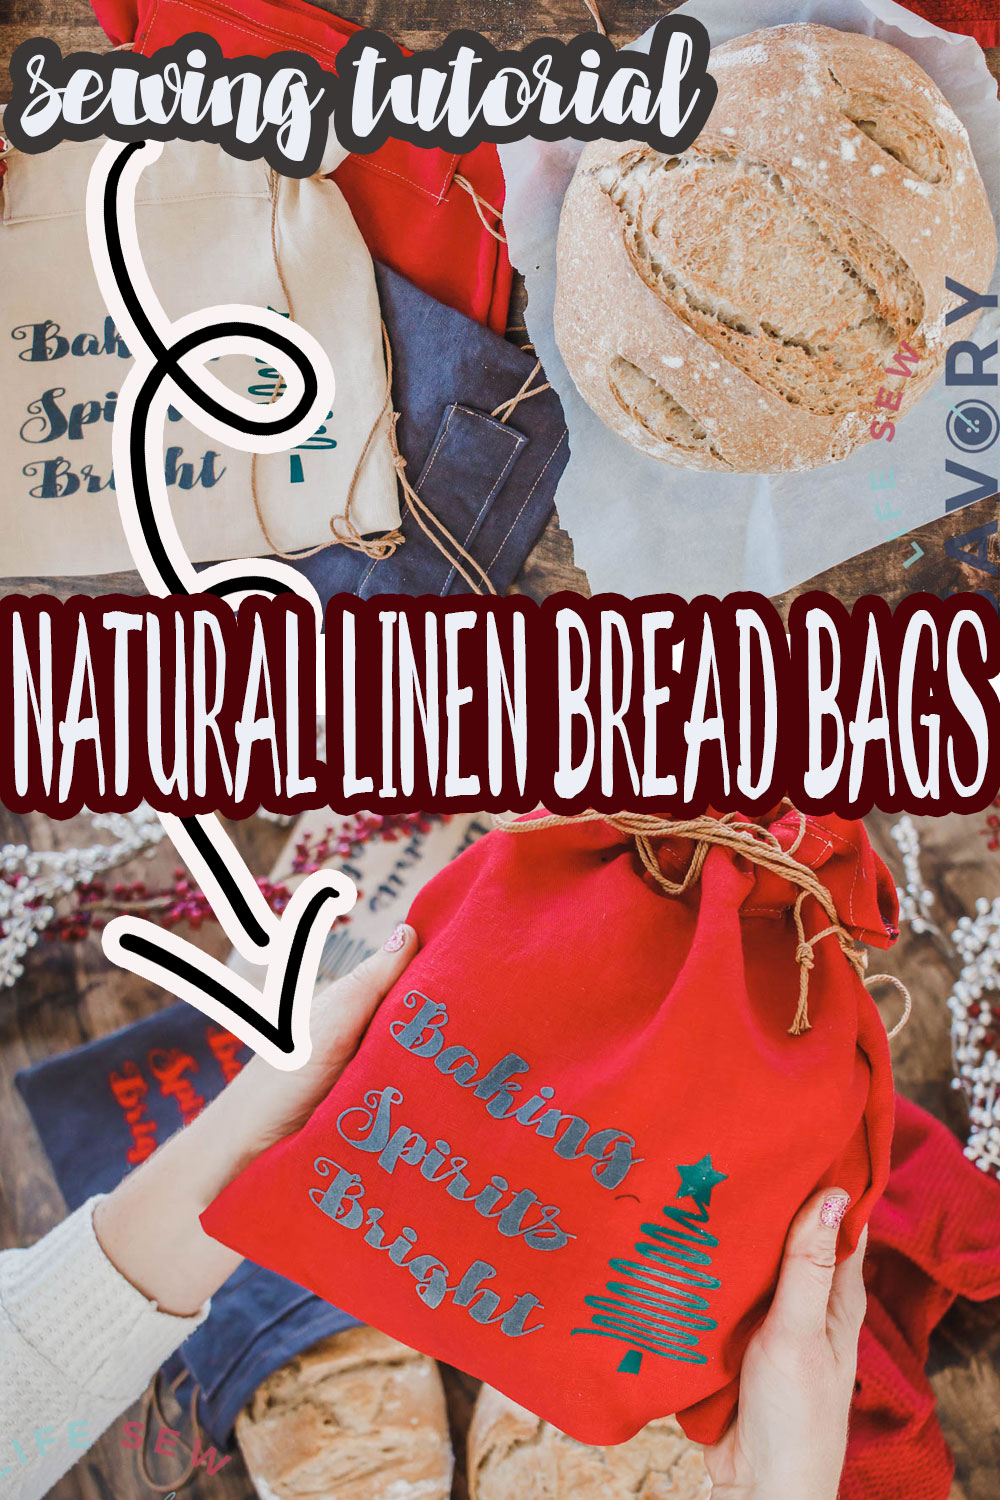 Sew a linen bread bag with this easy sewing tutorial. Gifting bread makes everyone happy and these natural linen bread bags make the perfect handmade gift partner.